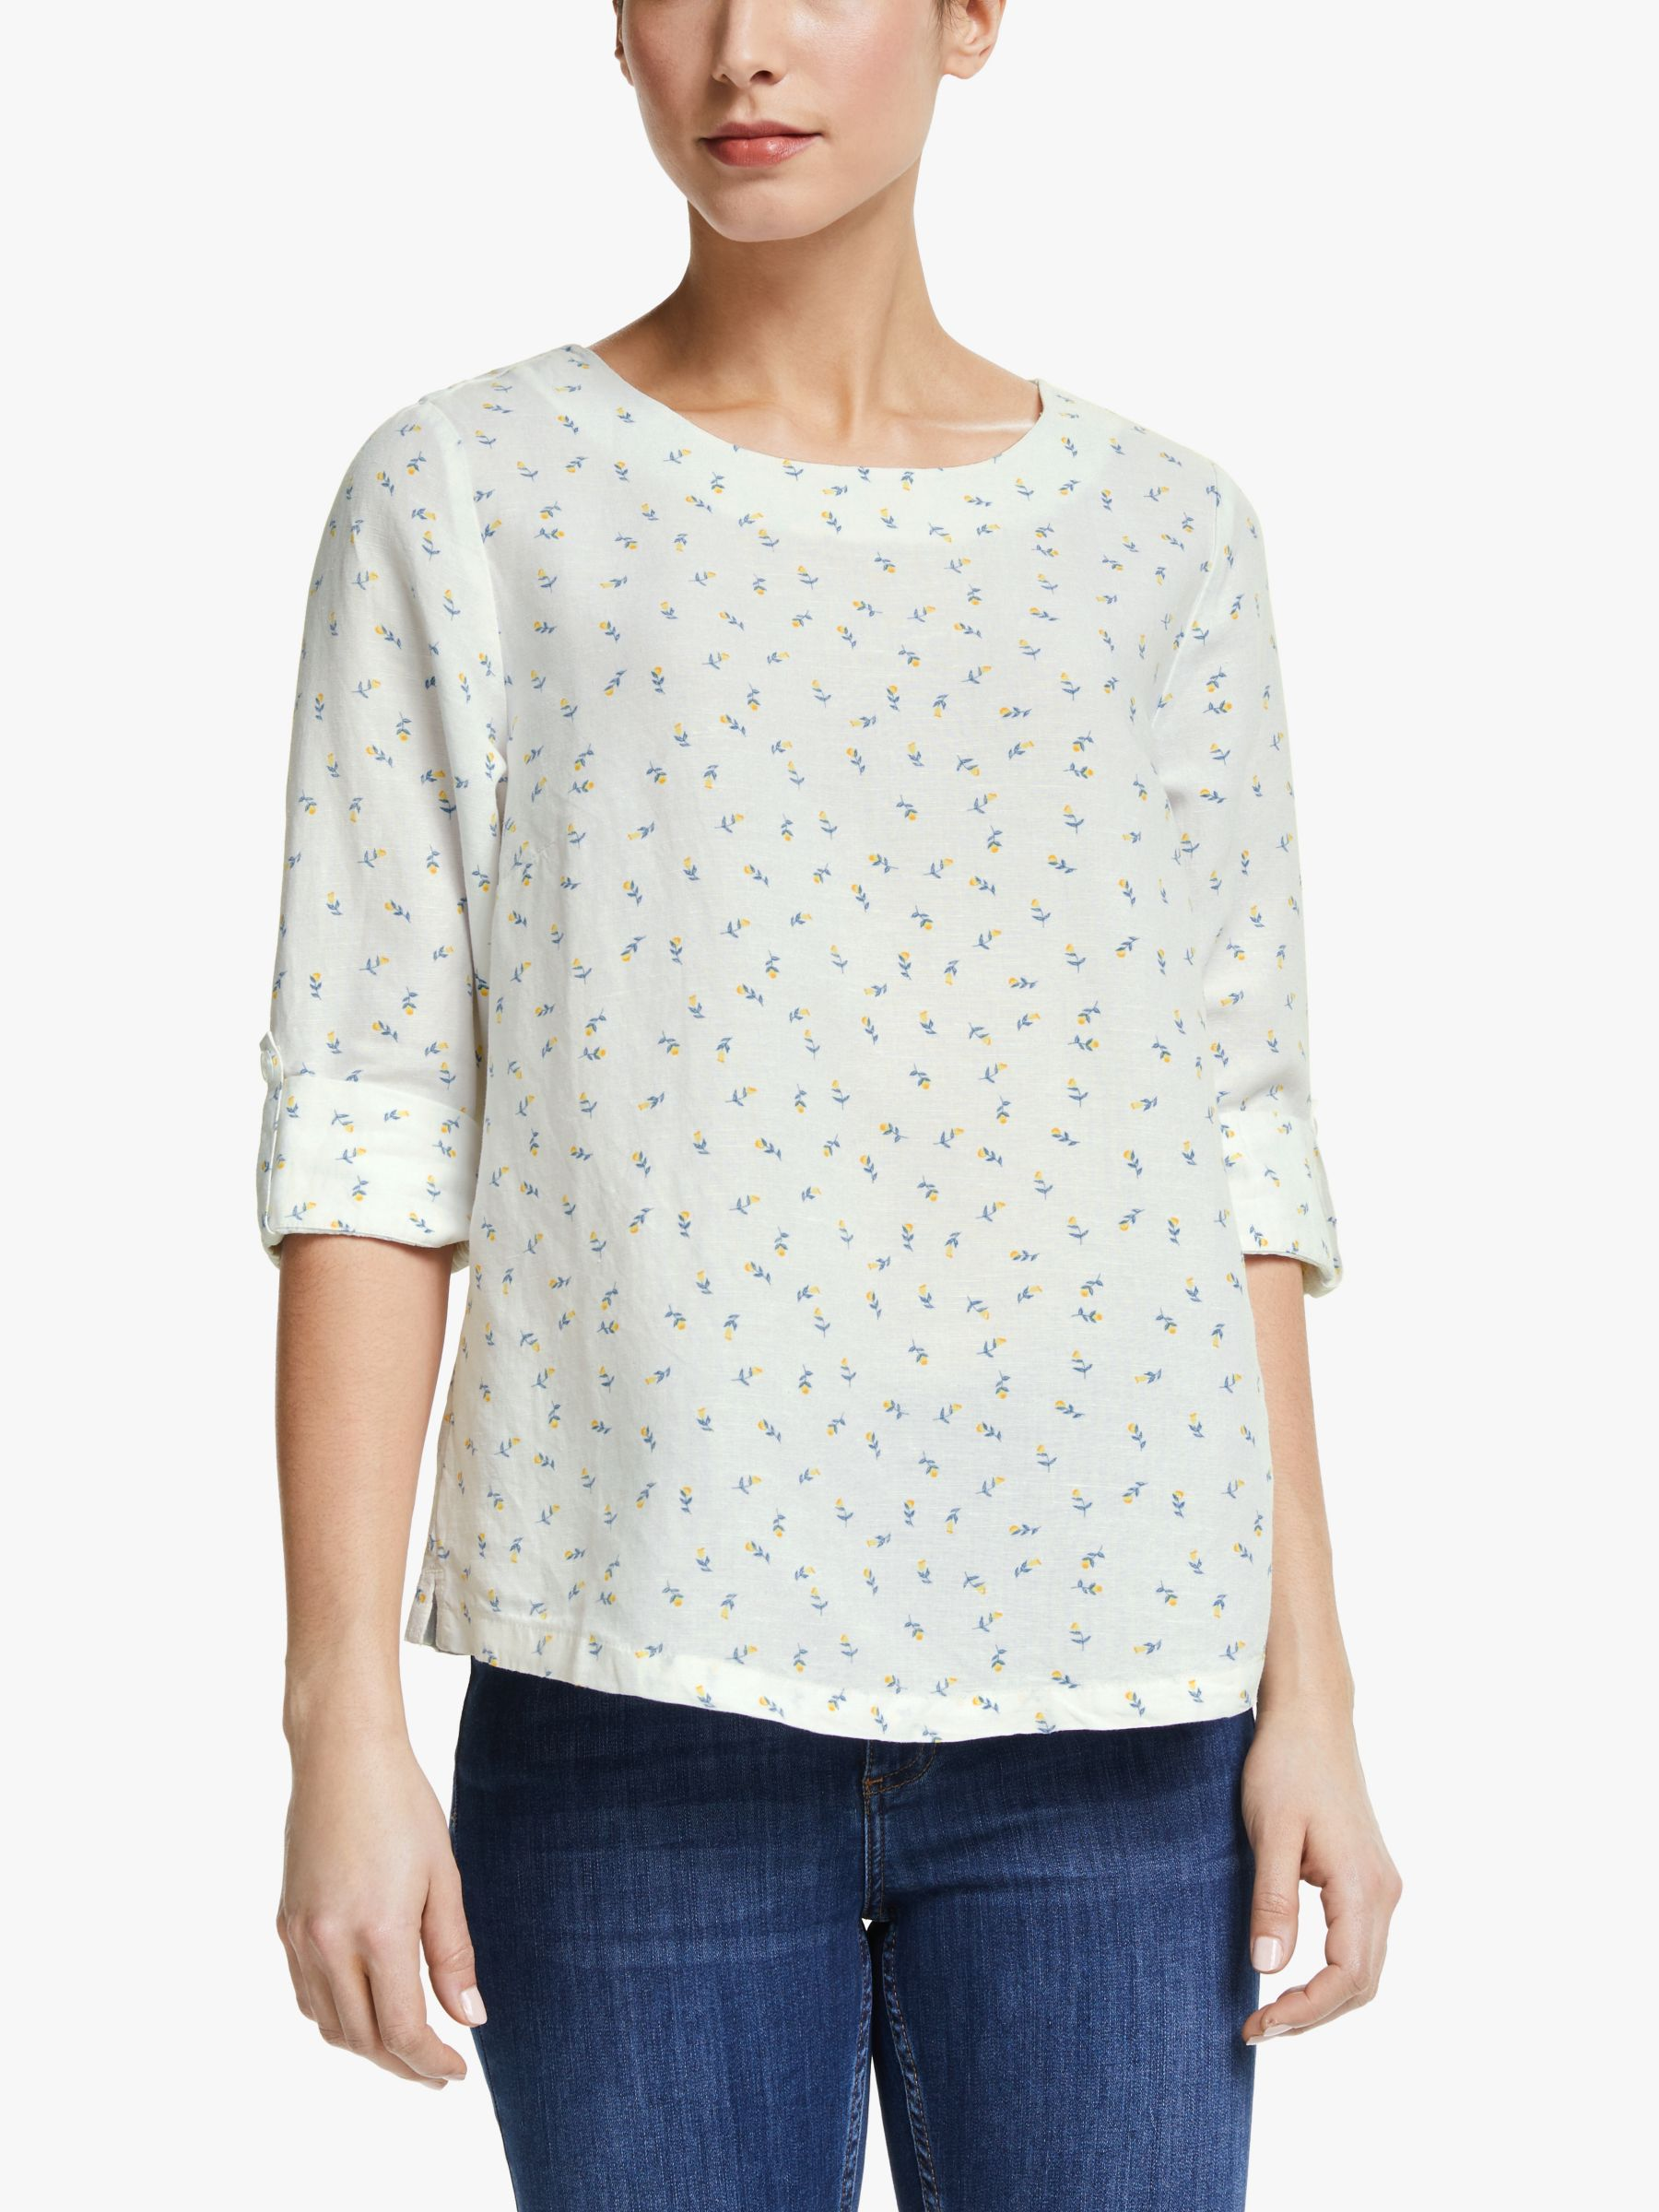 Collection WEEKEND by John Lewis Collection WEEKEND by John Lewis Emilia Linen Blend Floral Shell Top, White/Multi